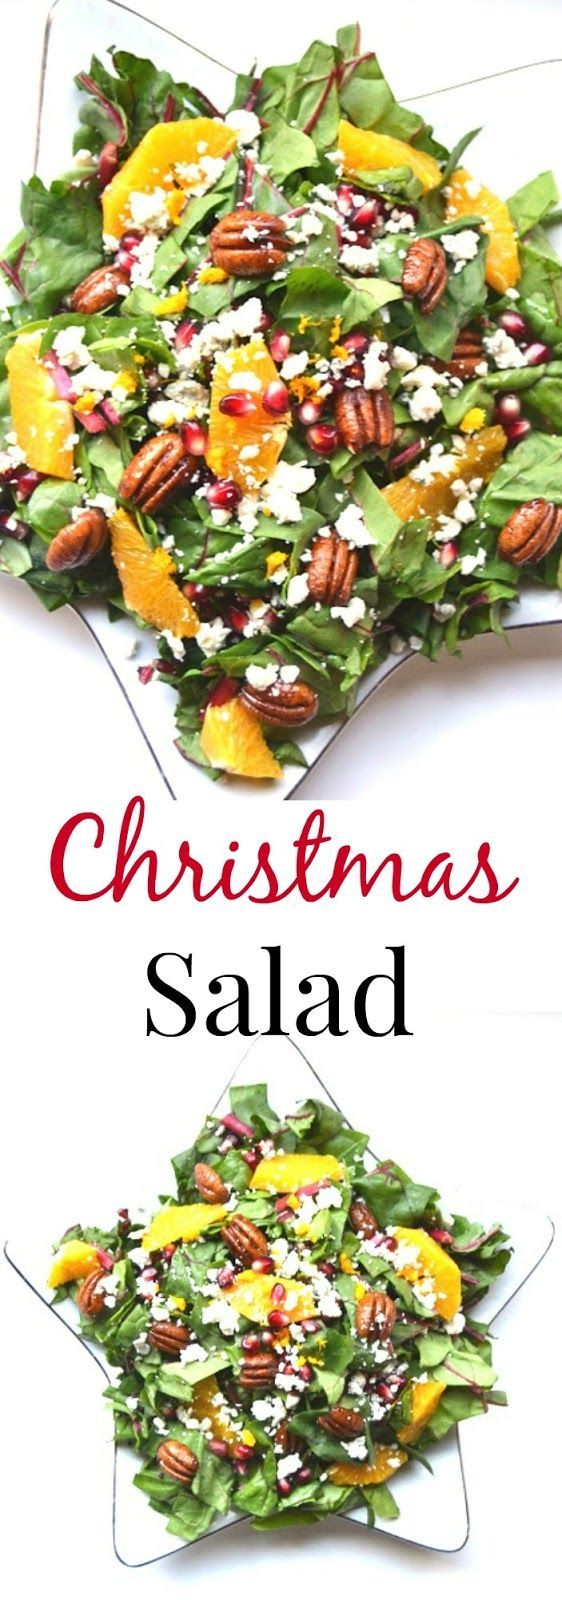 This Christmas Salad is packed full of nutrients and flavor with fresh oranges, pomegranate seeds, pecans, Swiss chard and blue cheese with a homemade dressing.